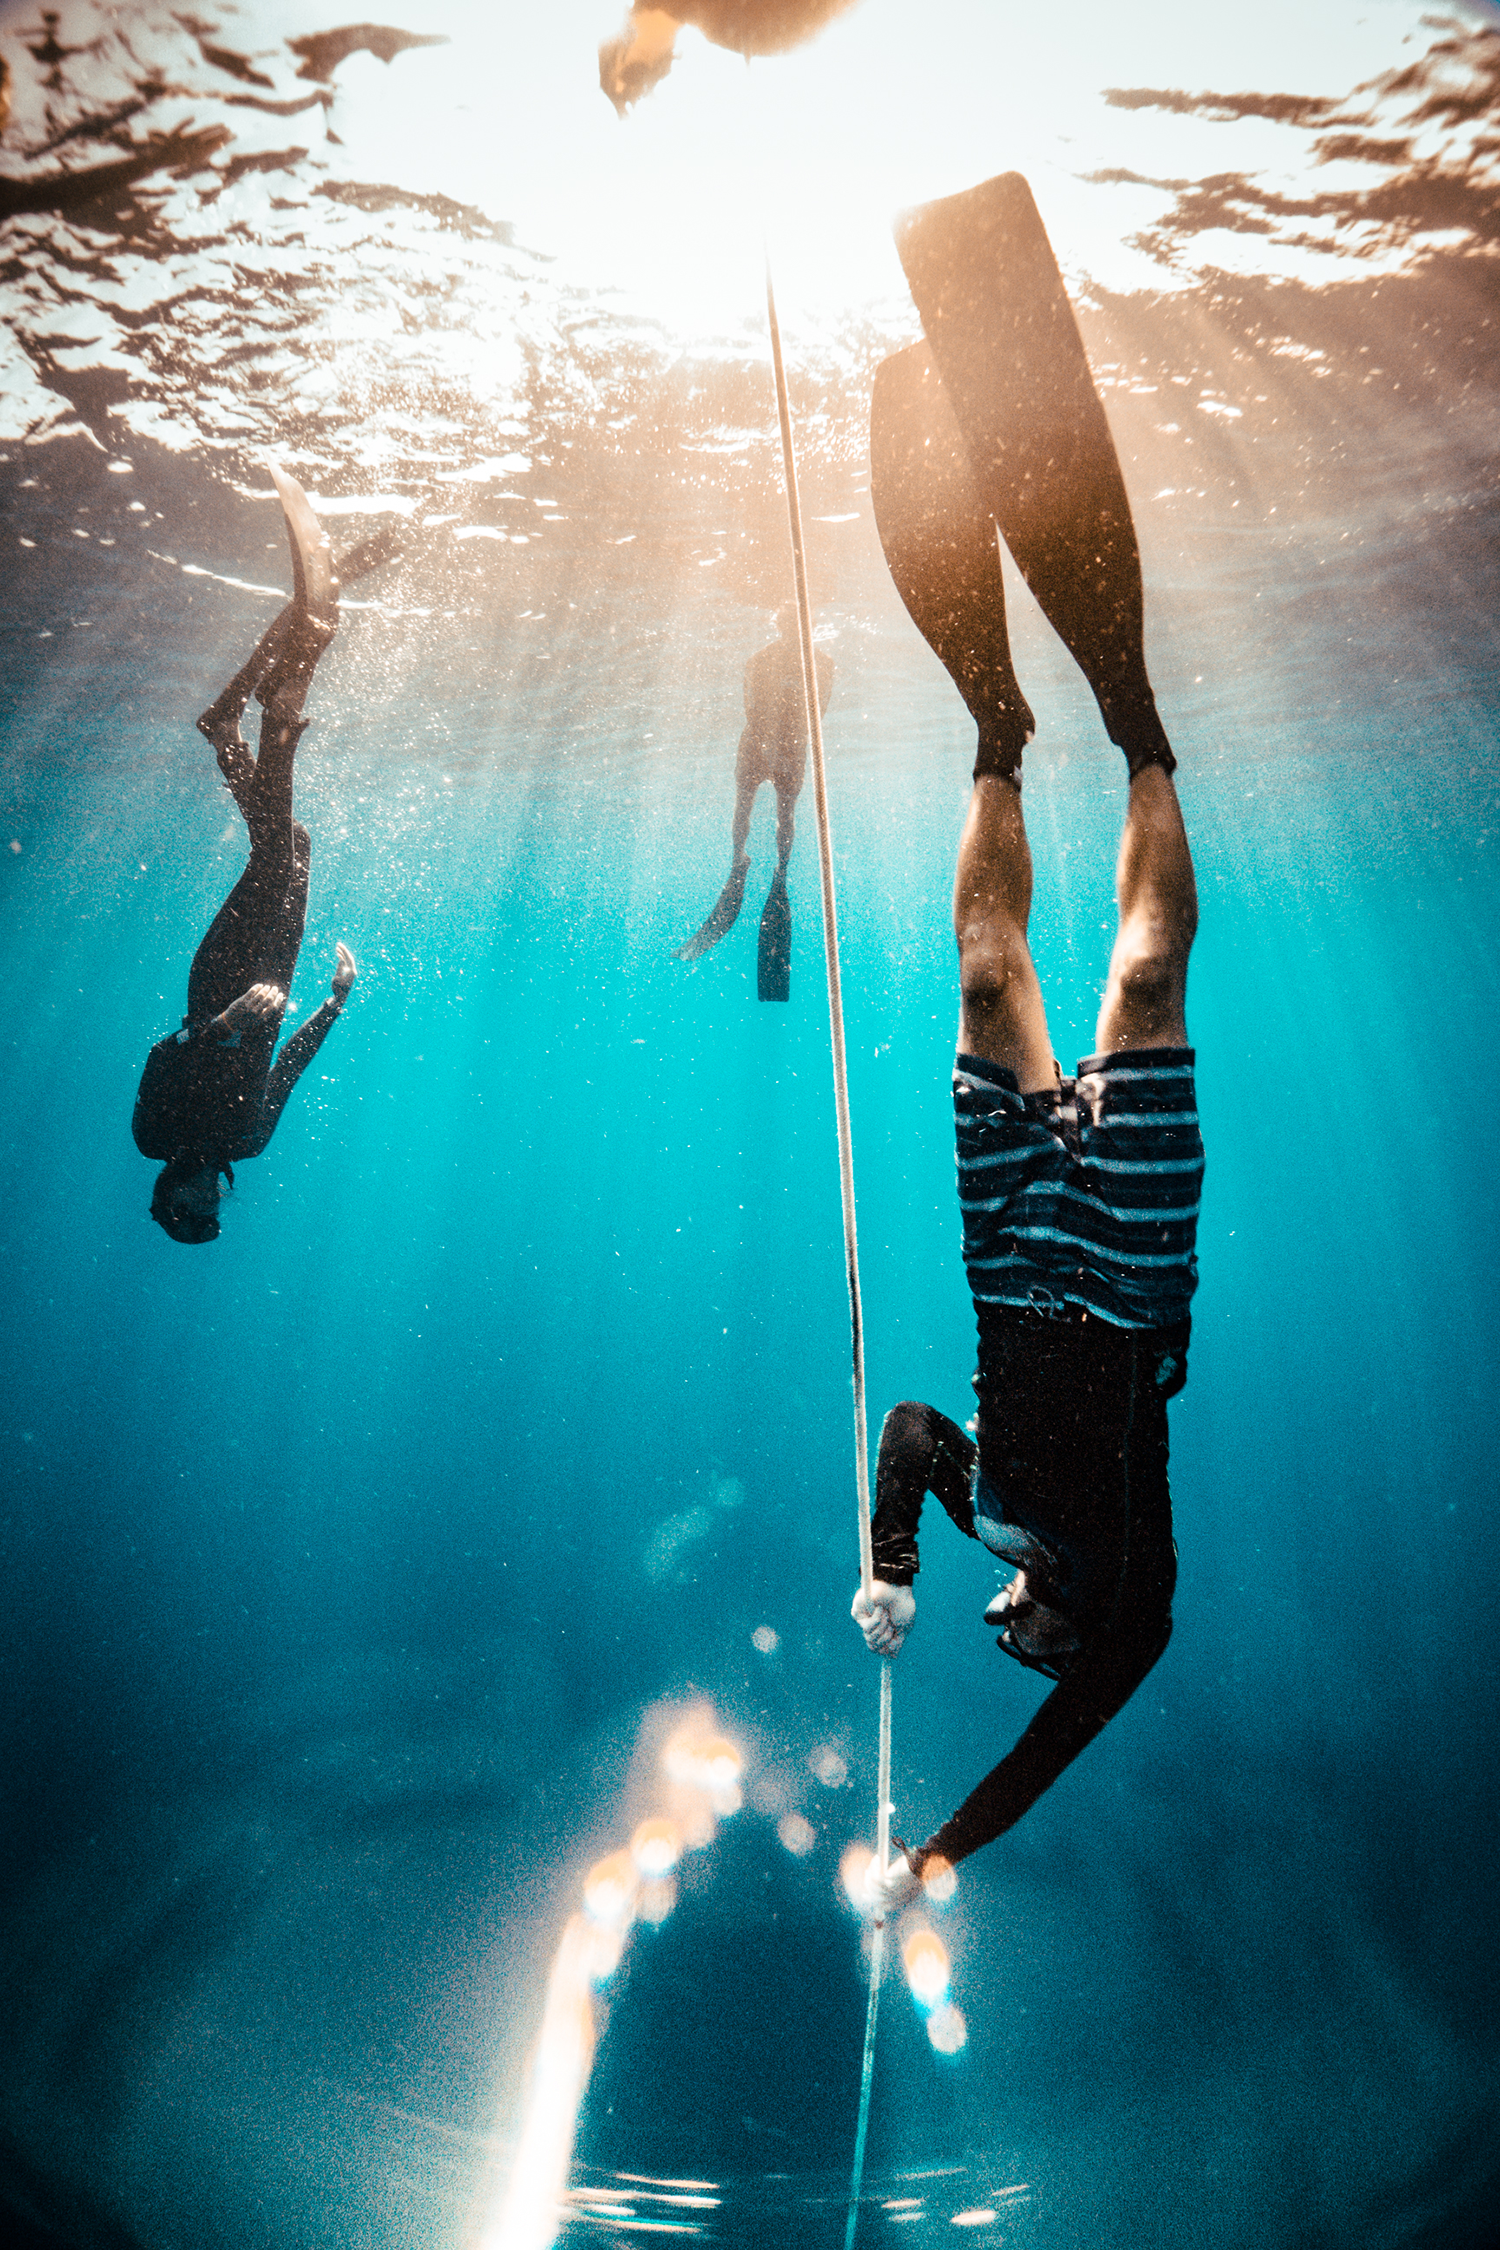 190407_MR-FREEDIVE-Tino-Ben-Mike-Marie-small_DSC05986.png